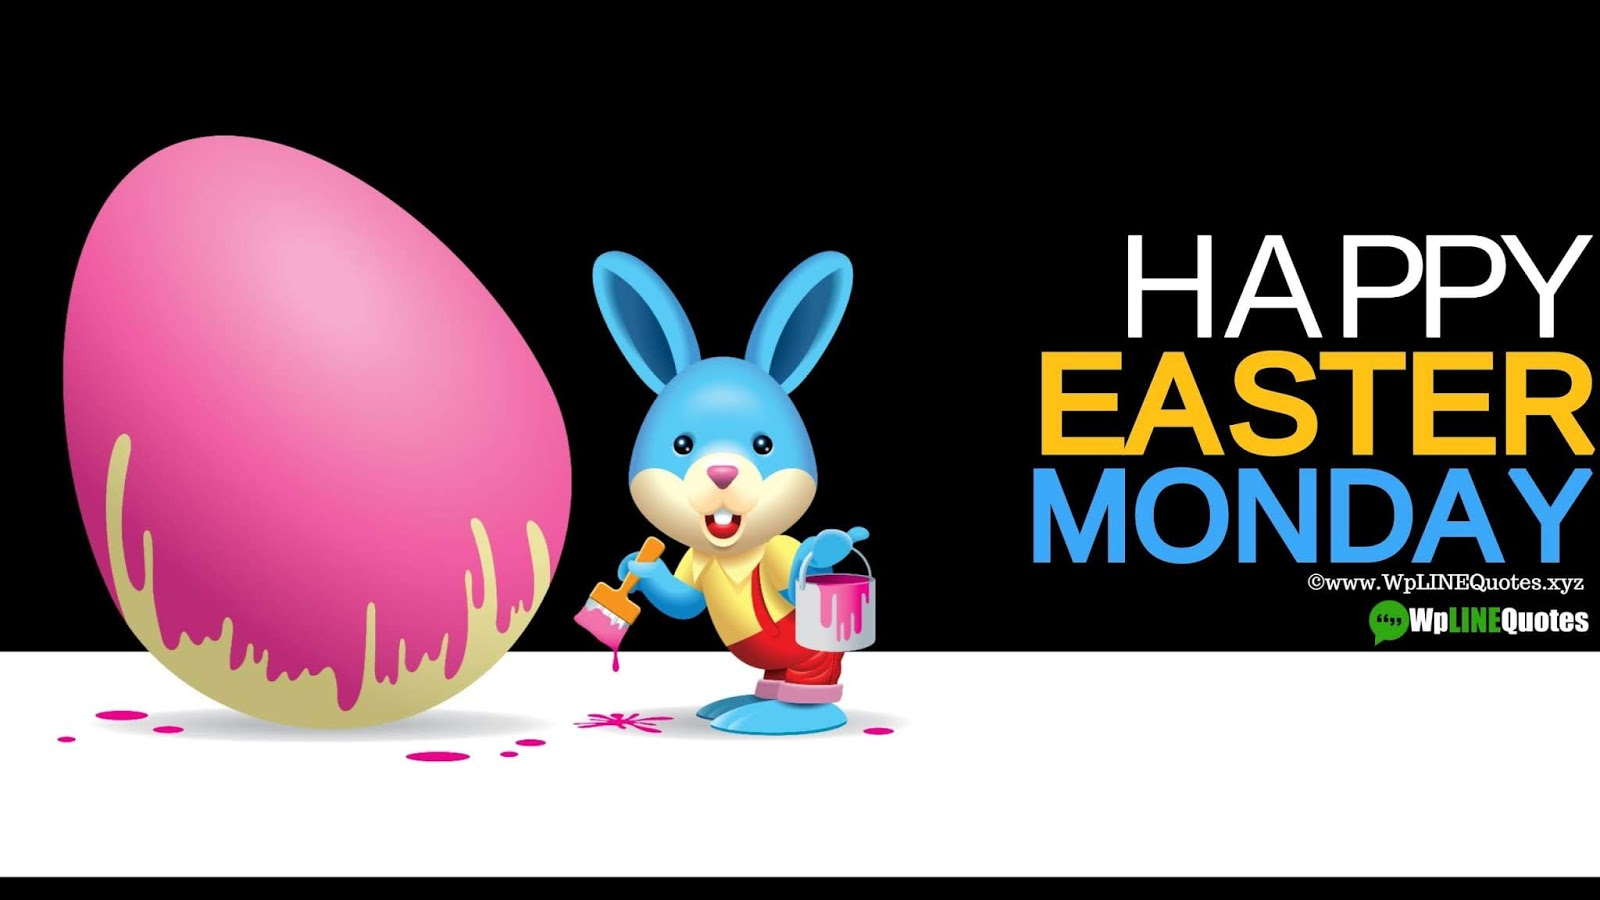 Easter Monday Quotes, Wishes, Messages, Greetings, Meaning, History, Images, Pictures, Wallpaper